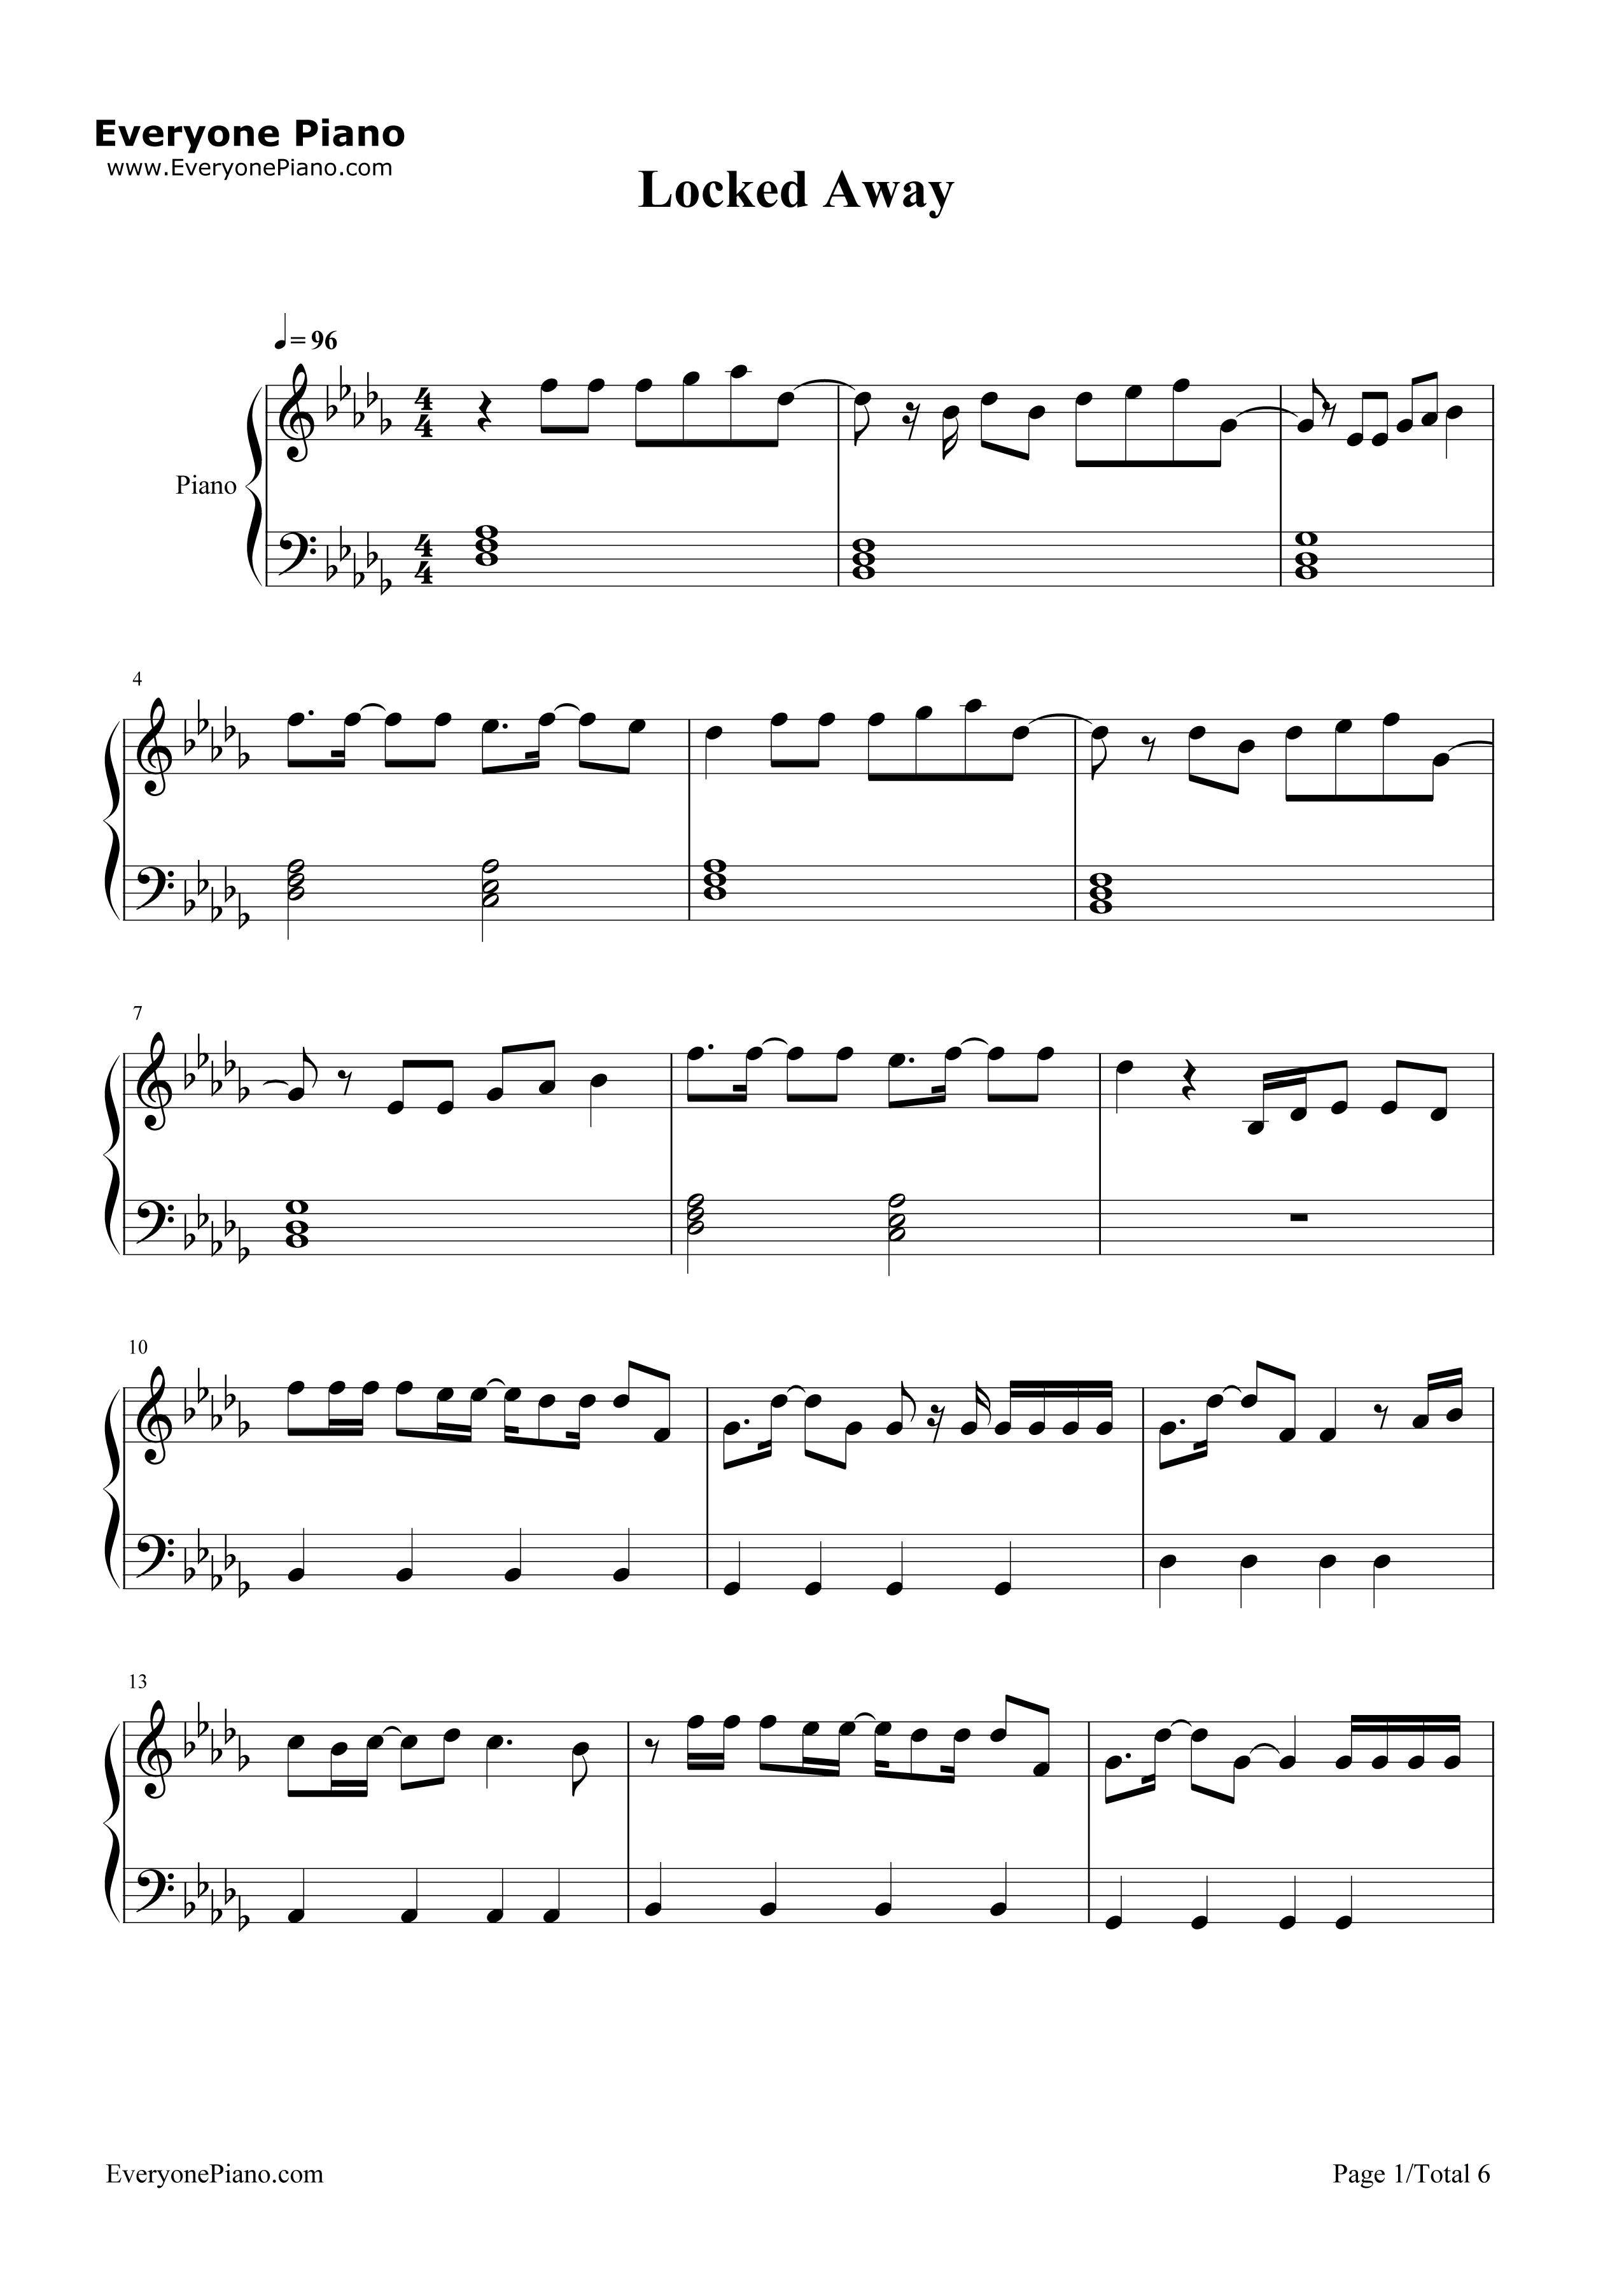 Locked Away-R. City Stave Preview 1-Free Piano Sheet Music u0026 Piano Chords